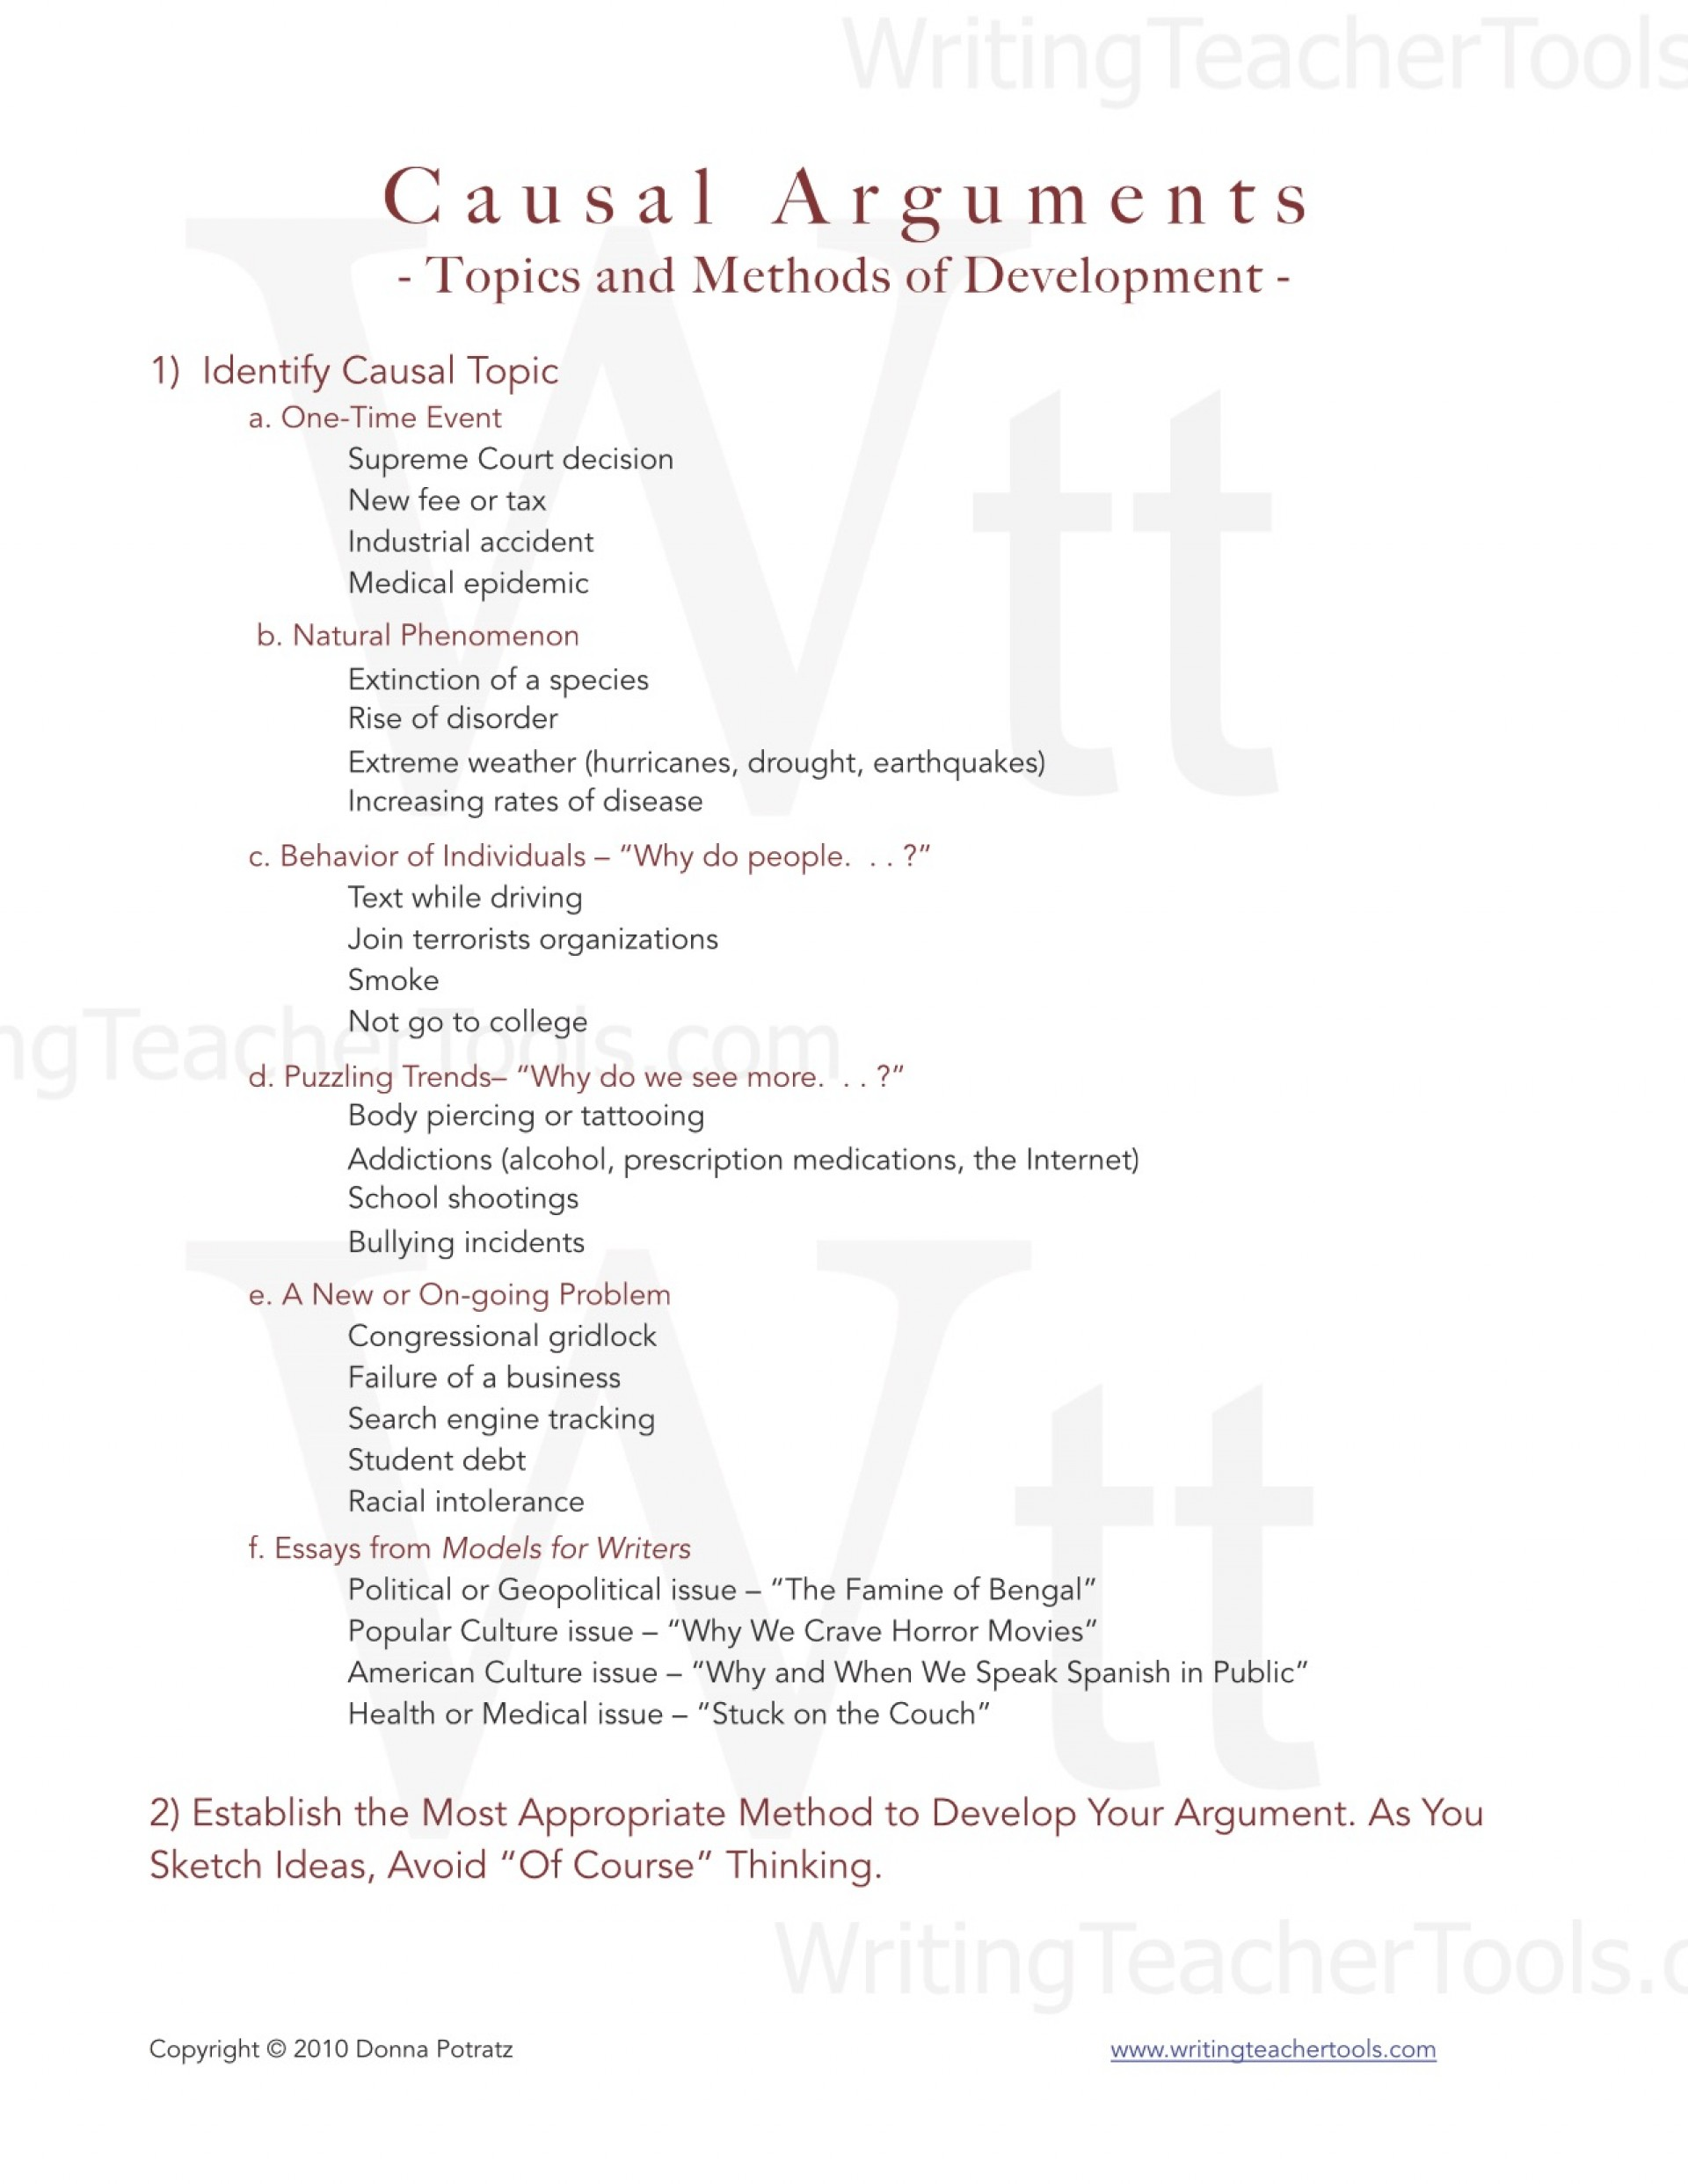 020 Evaluation Essay Topics Example Evaluative Causal For Argument And Methods Of Awful Questions With Criteria 1920